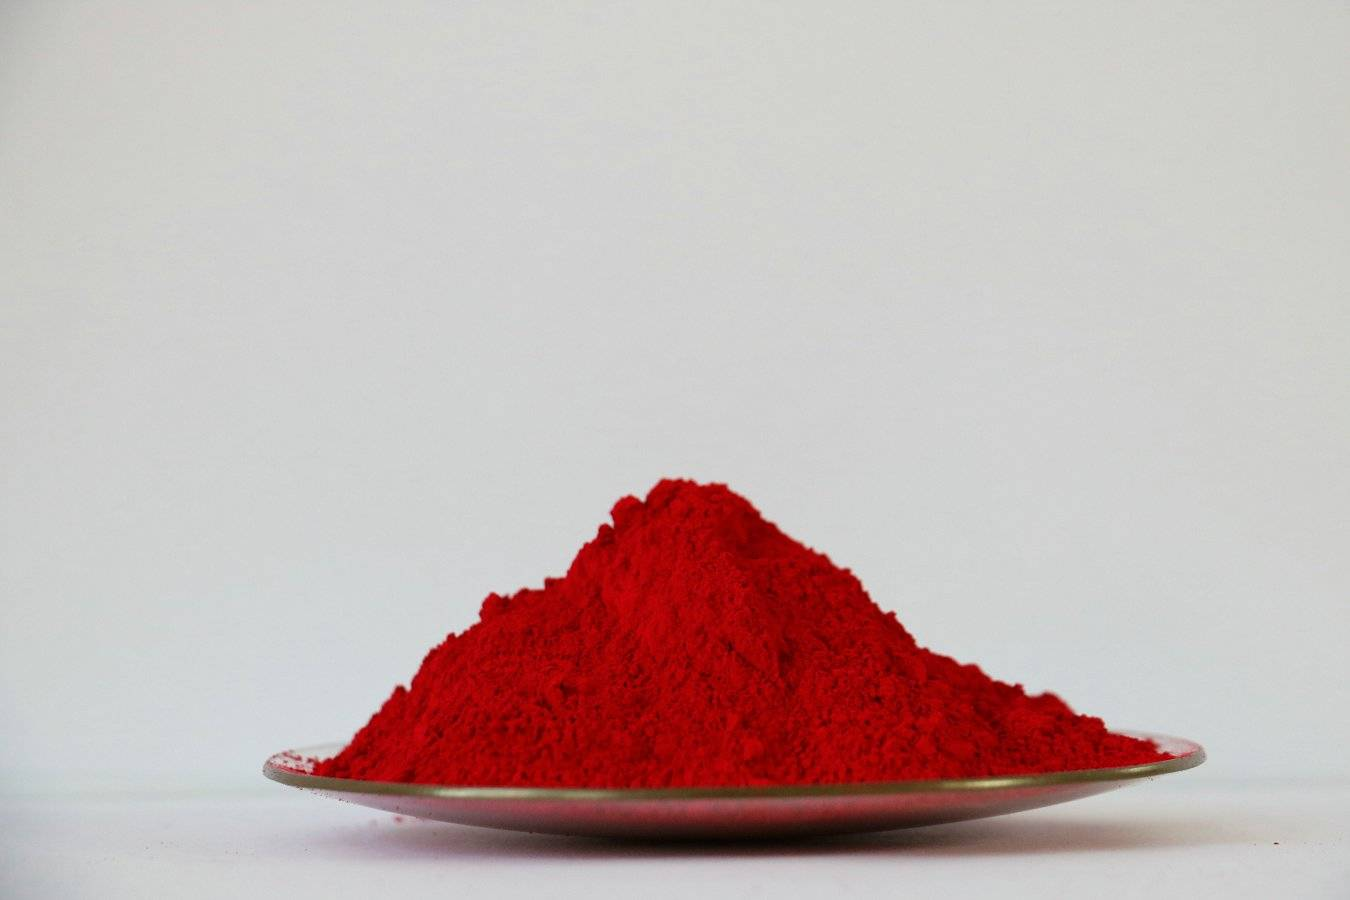 Pigment Red 8 for Textile. Permanent Red F4r, YHR0801 YHR0802 YHR0803 YHR0804 YHR0807